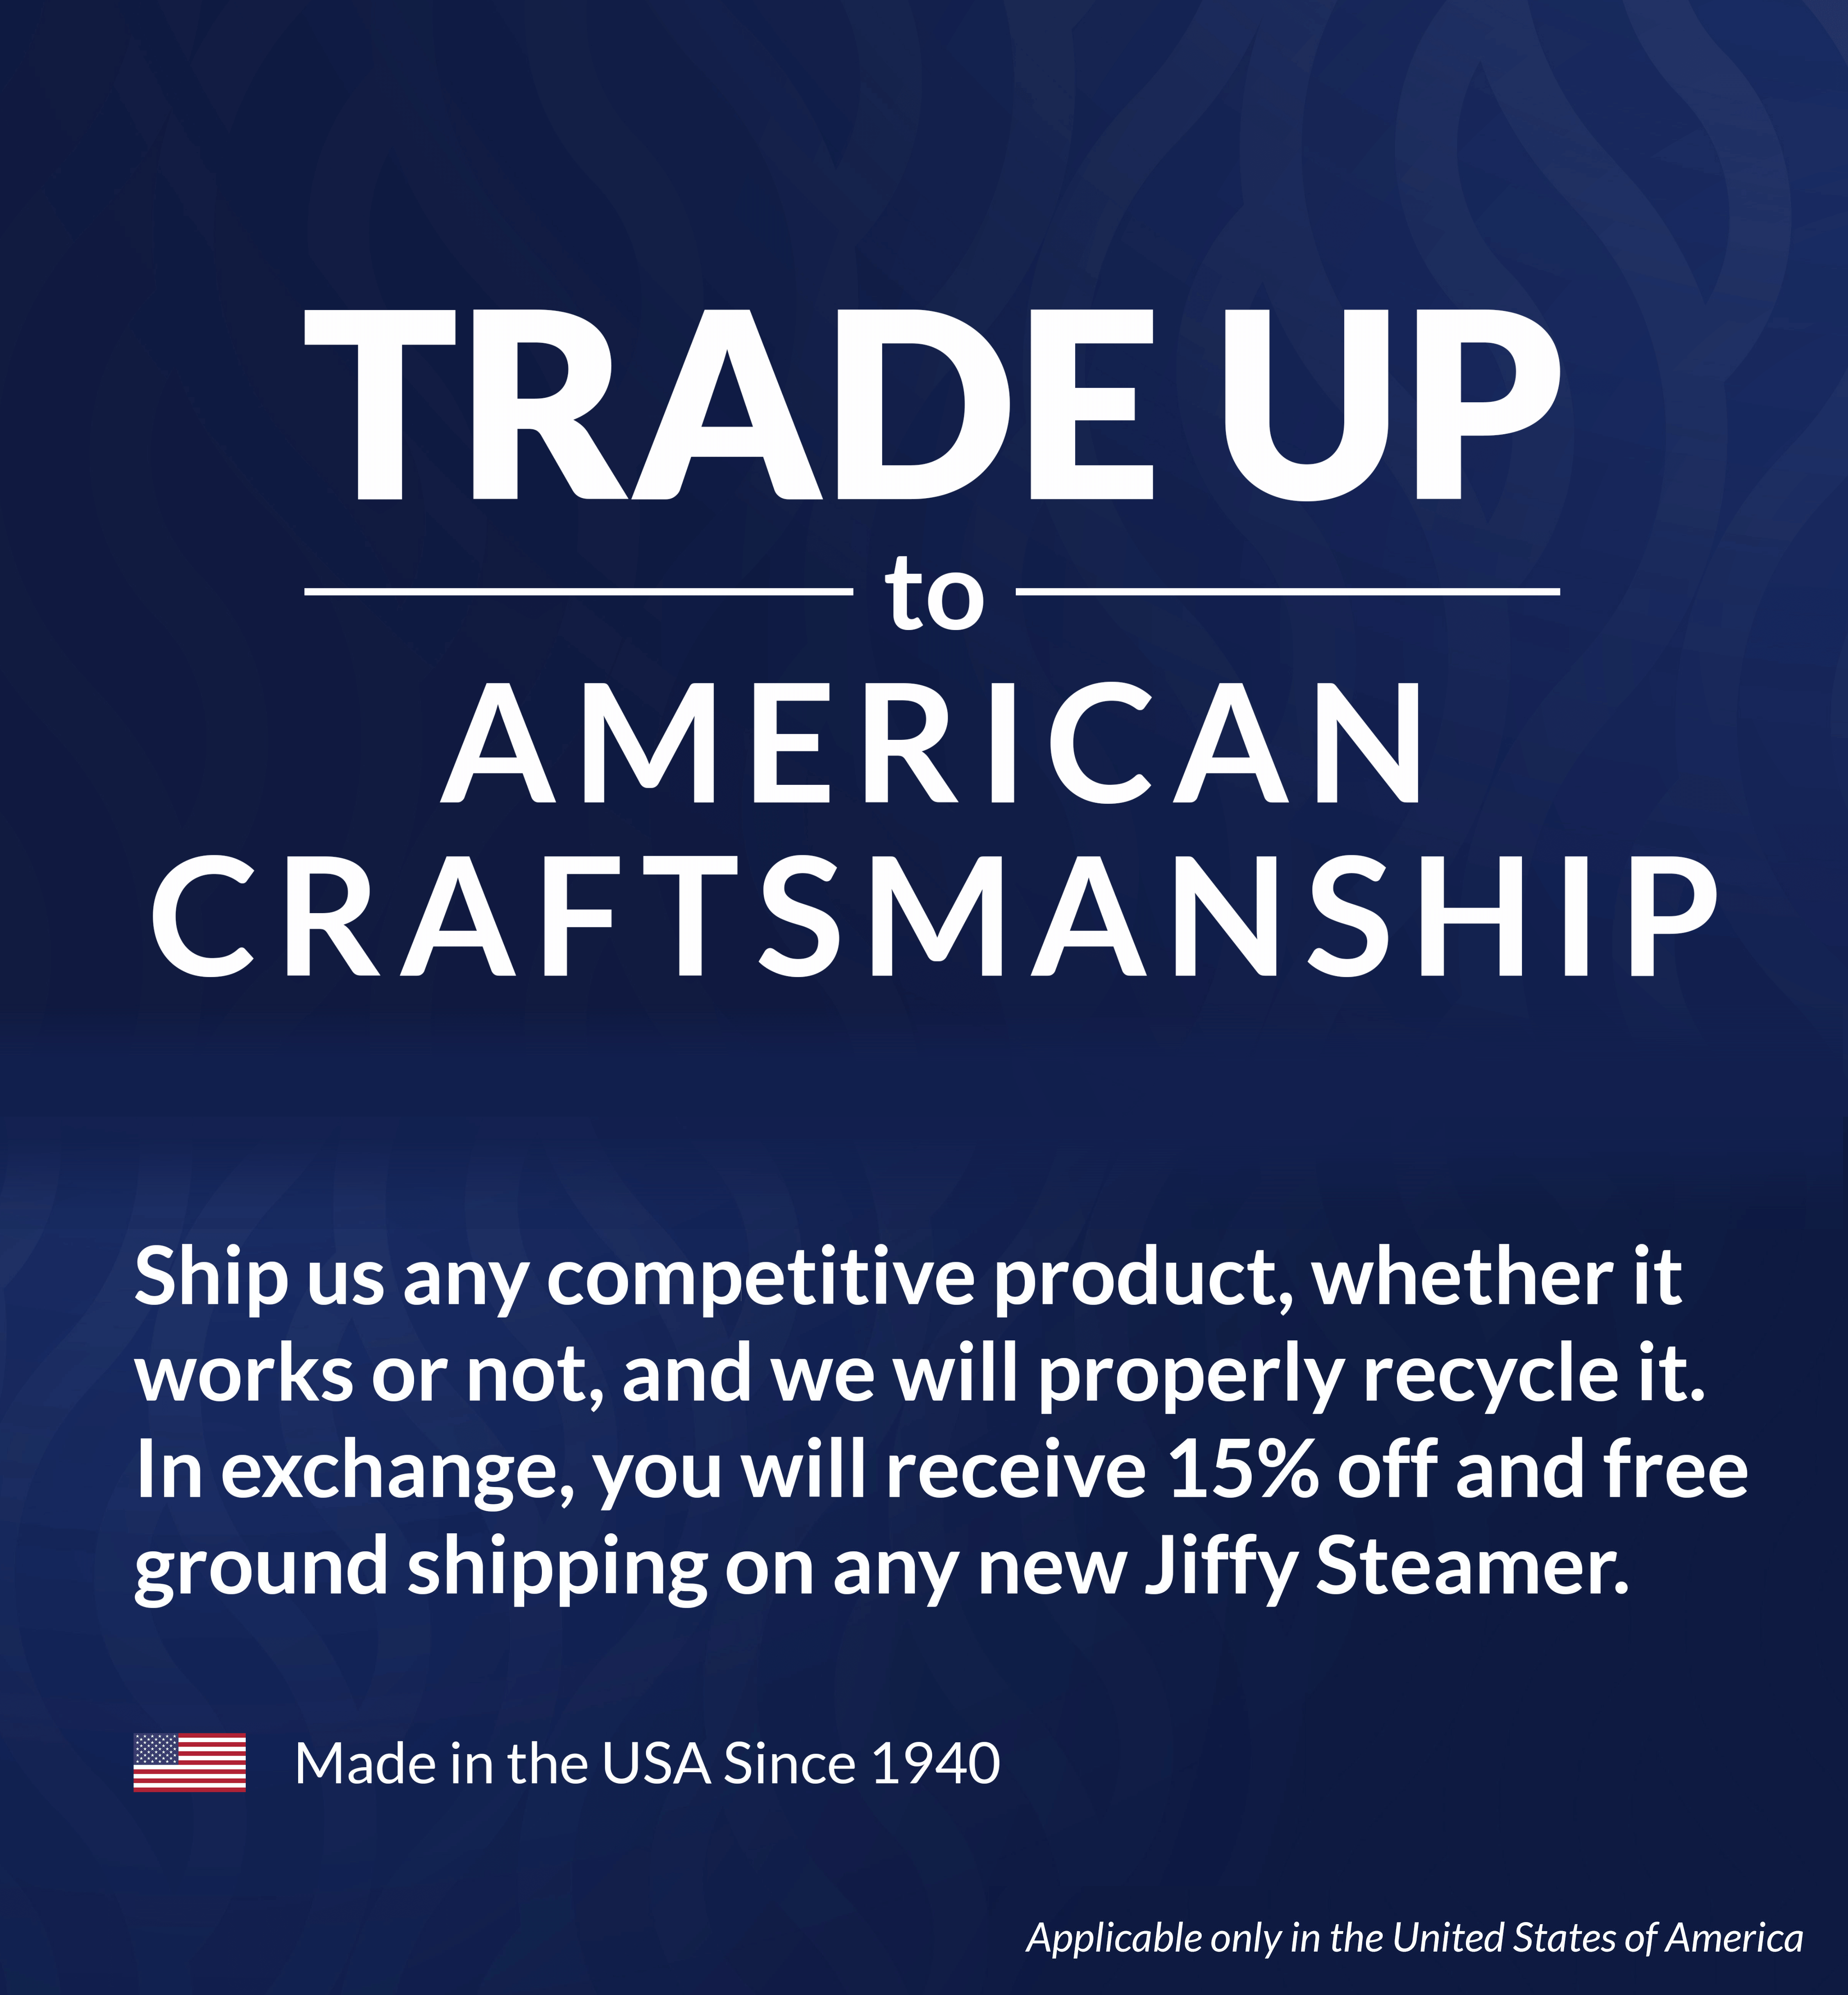 Trade-up to American Craftsmanship . Ship us any competitive product, whether it works or not, and we will properly recycle it. In exchange, you will receive 15% off and free ground shipping on any new Jiffy Steamer. Applicable only in the United States of America. Jiffy Steamer, made in the USA since 1940.